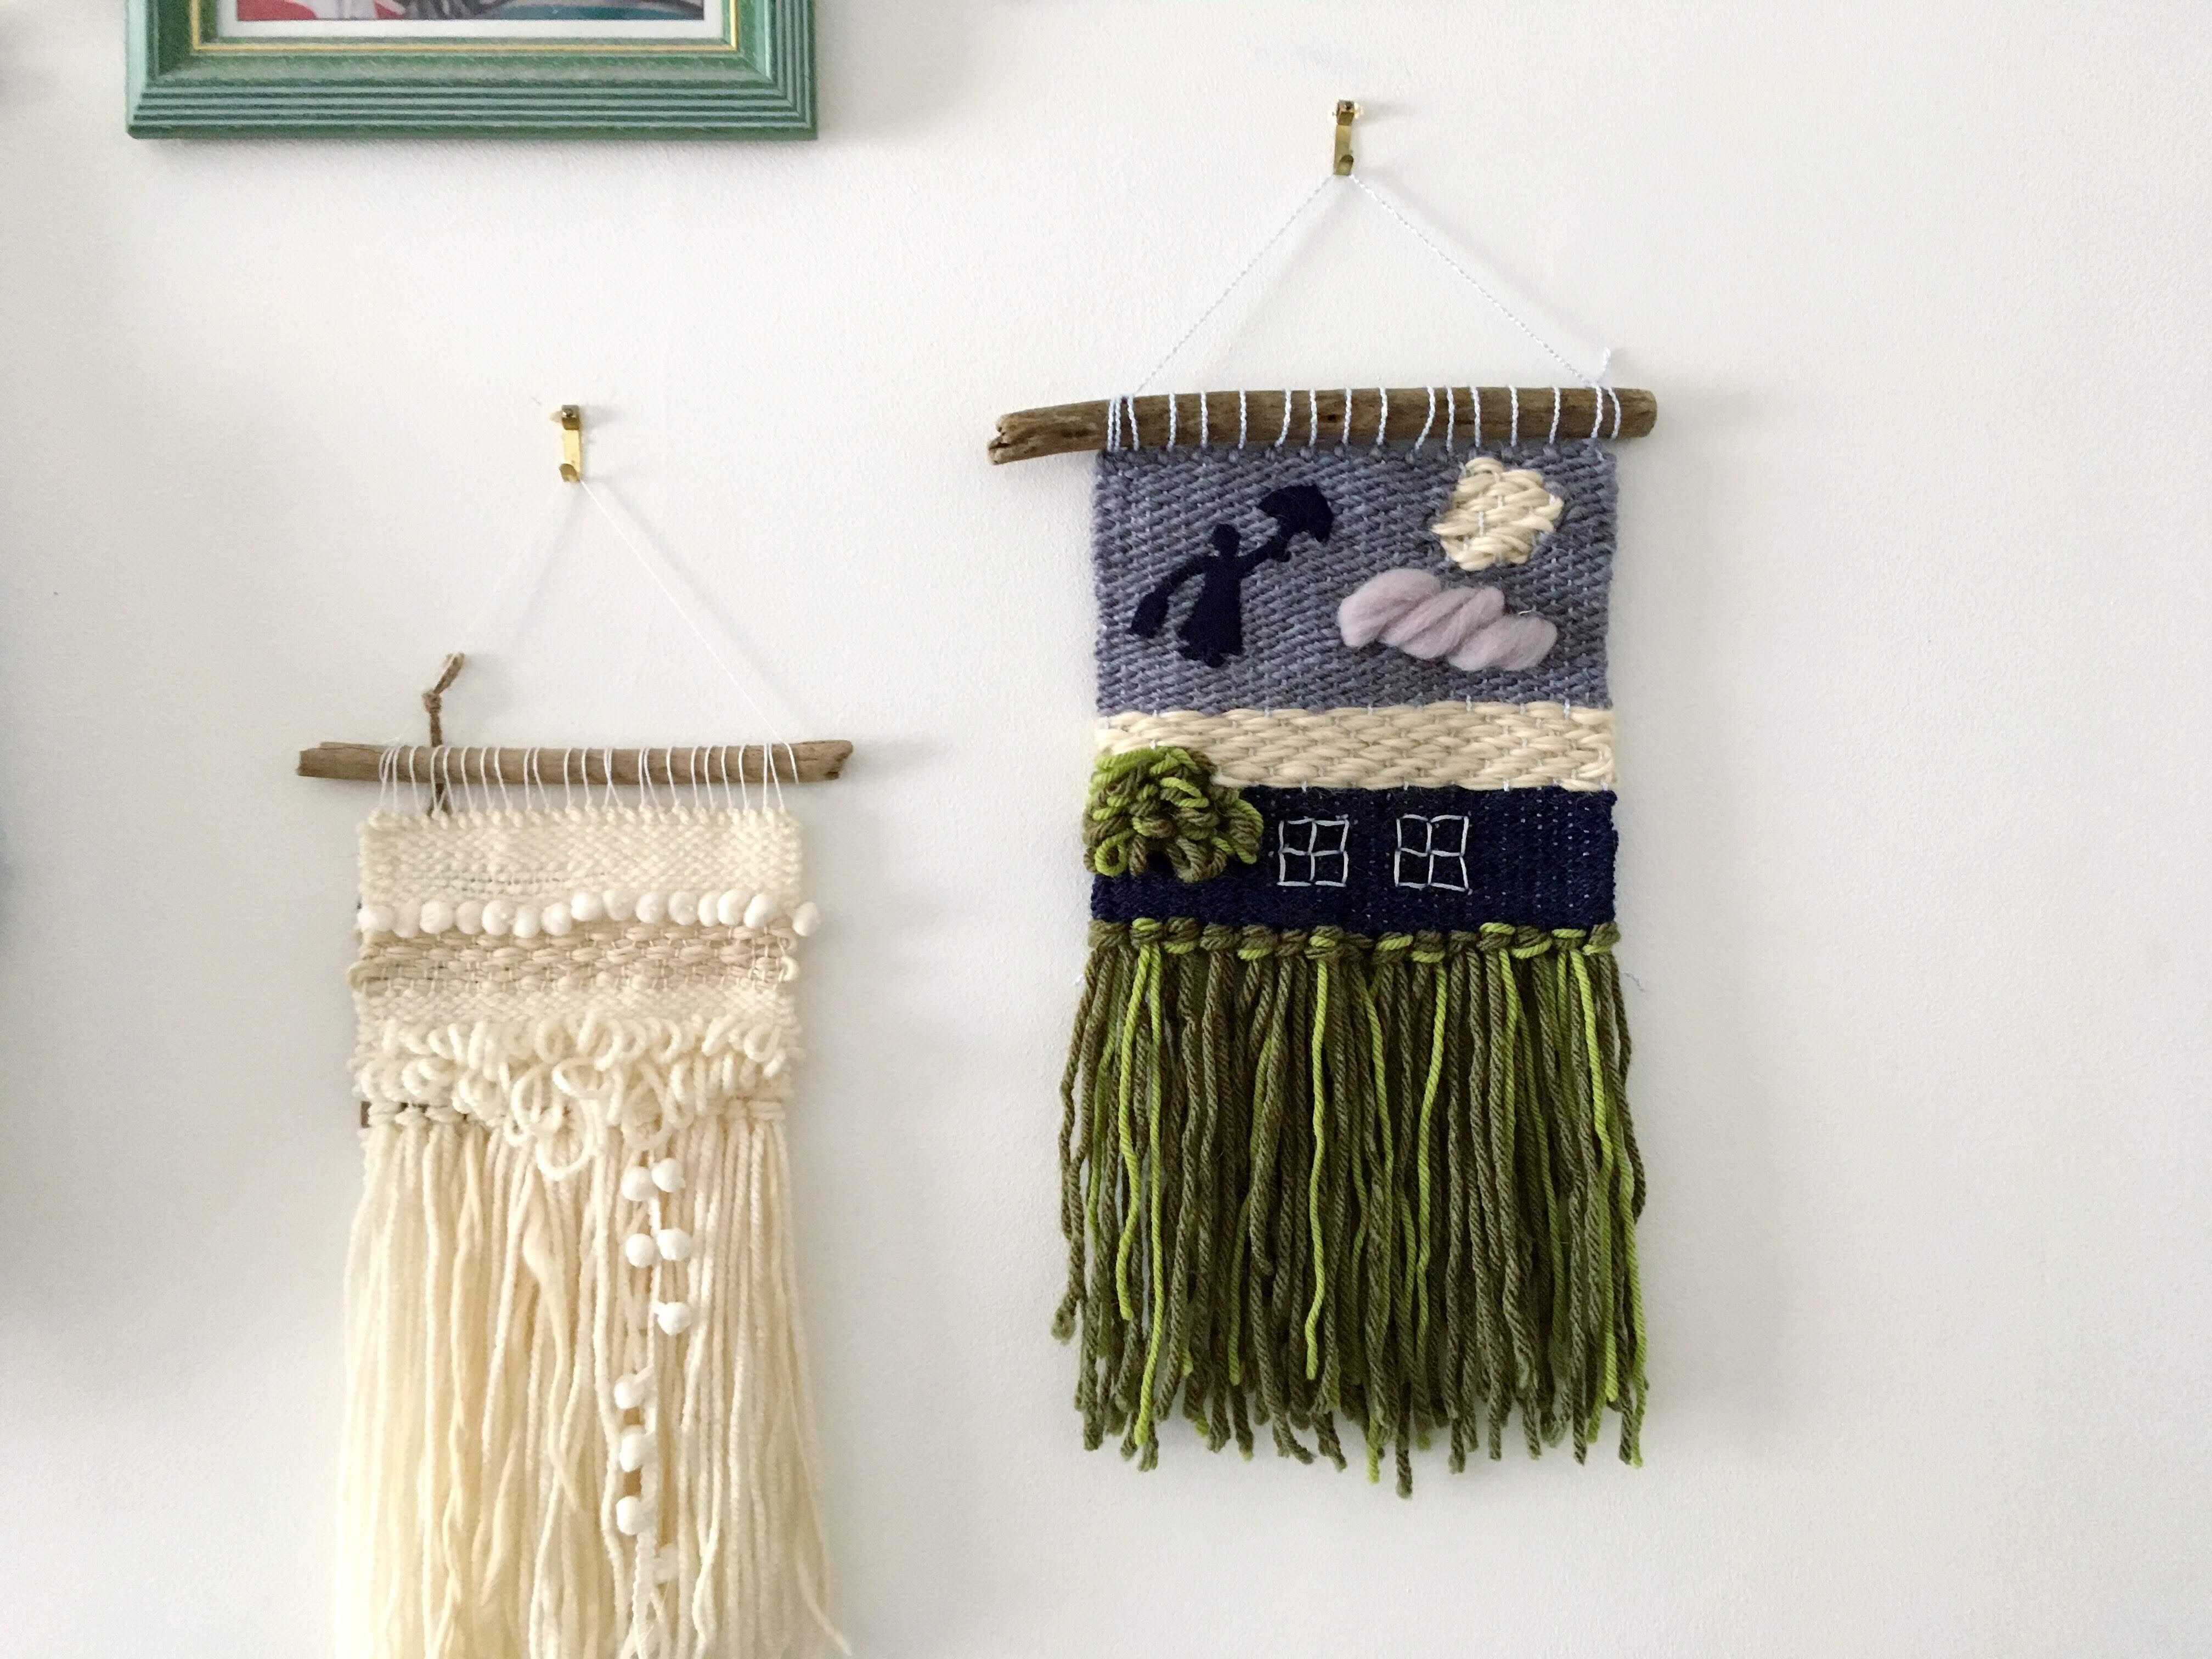 Mary Poppins inspired wall hanging